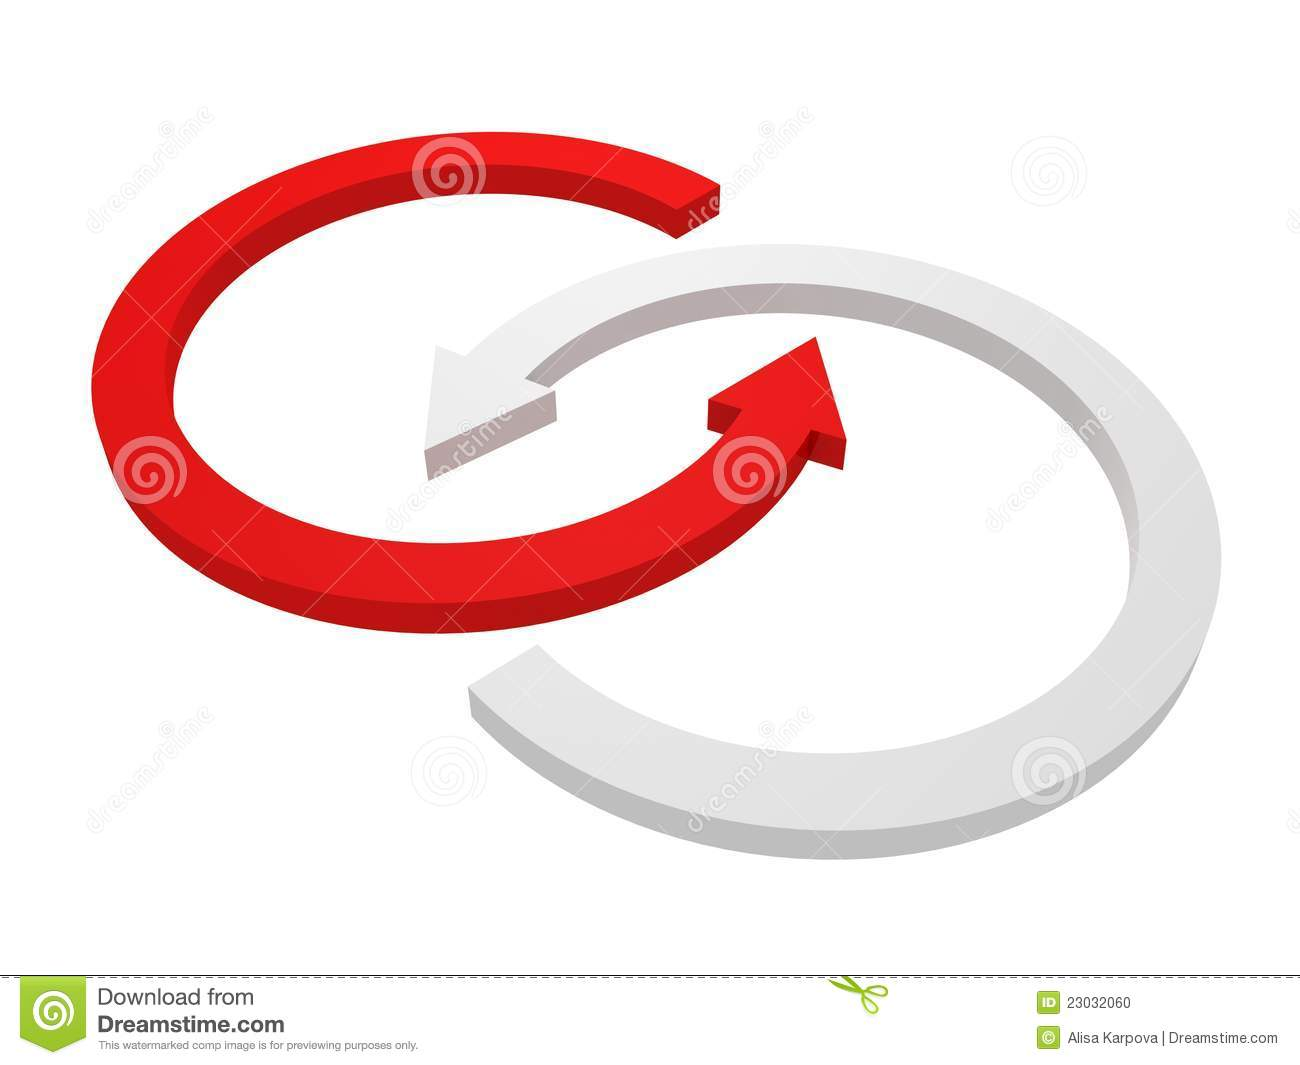 Red circle arrow clipart png download Rotate Circle Red And White Arrows On White Stock Photo - Image ... png download